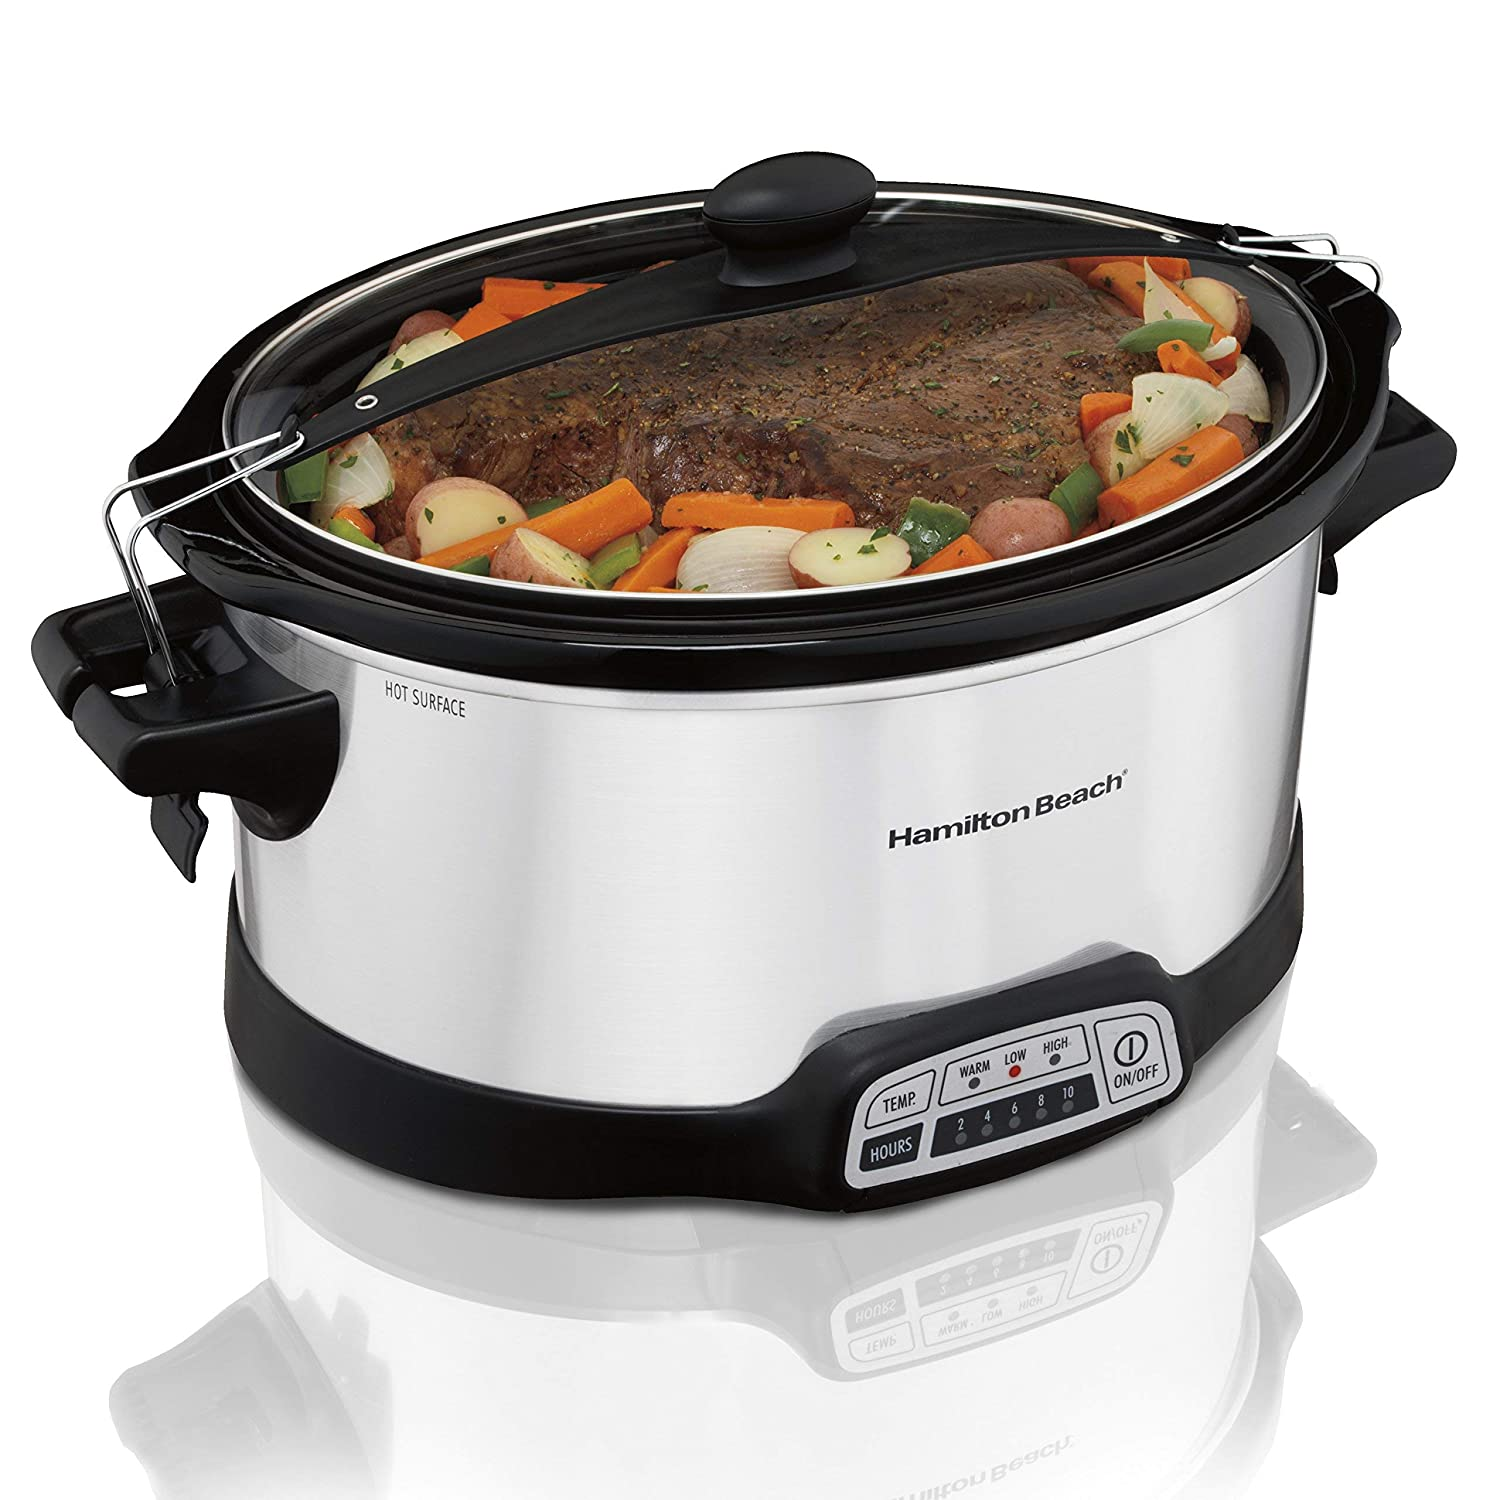 Hamilton Beach Programmable Slow Cooker, 7 quart with Clip-Tight Sealed Lid, Stainless Steel (33476), Silver (Renewed)